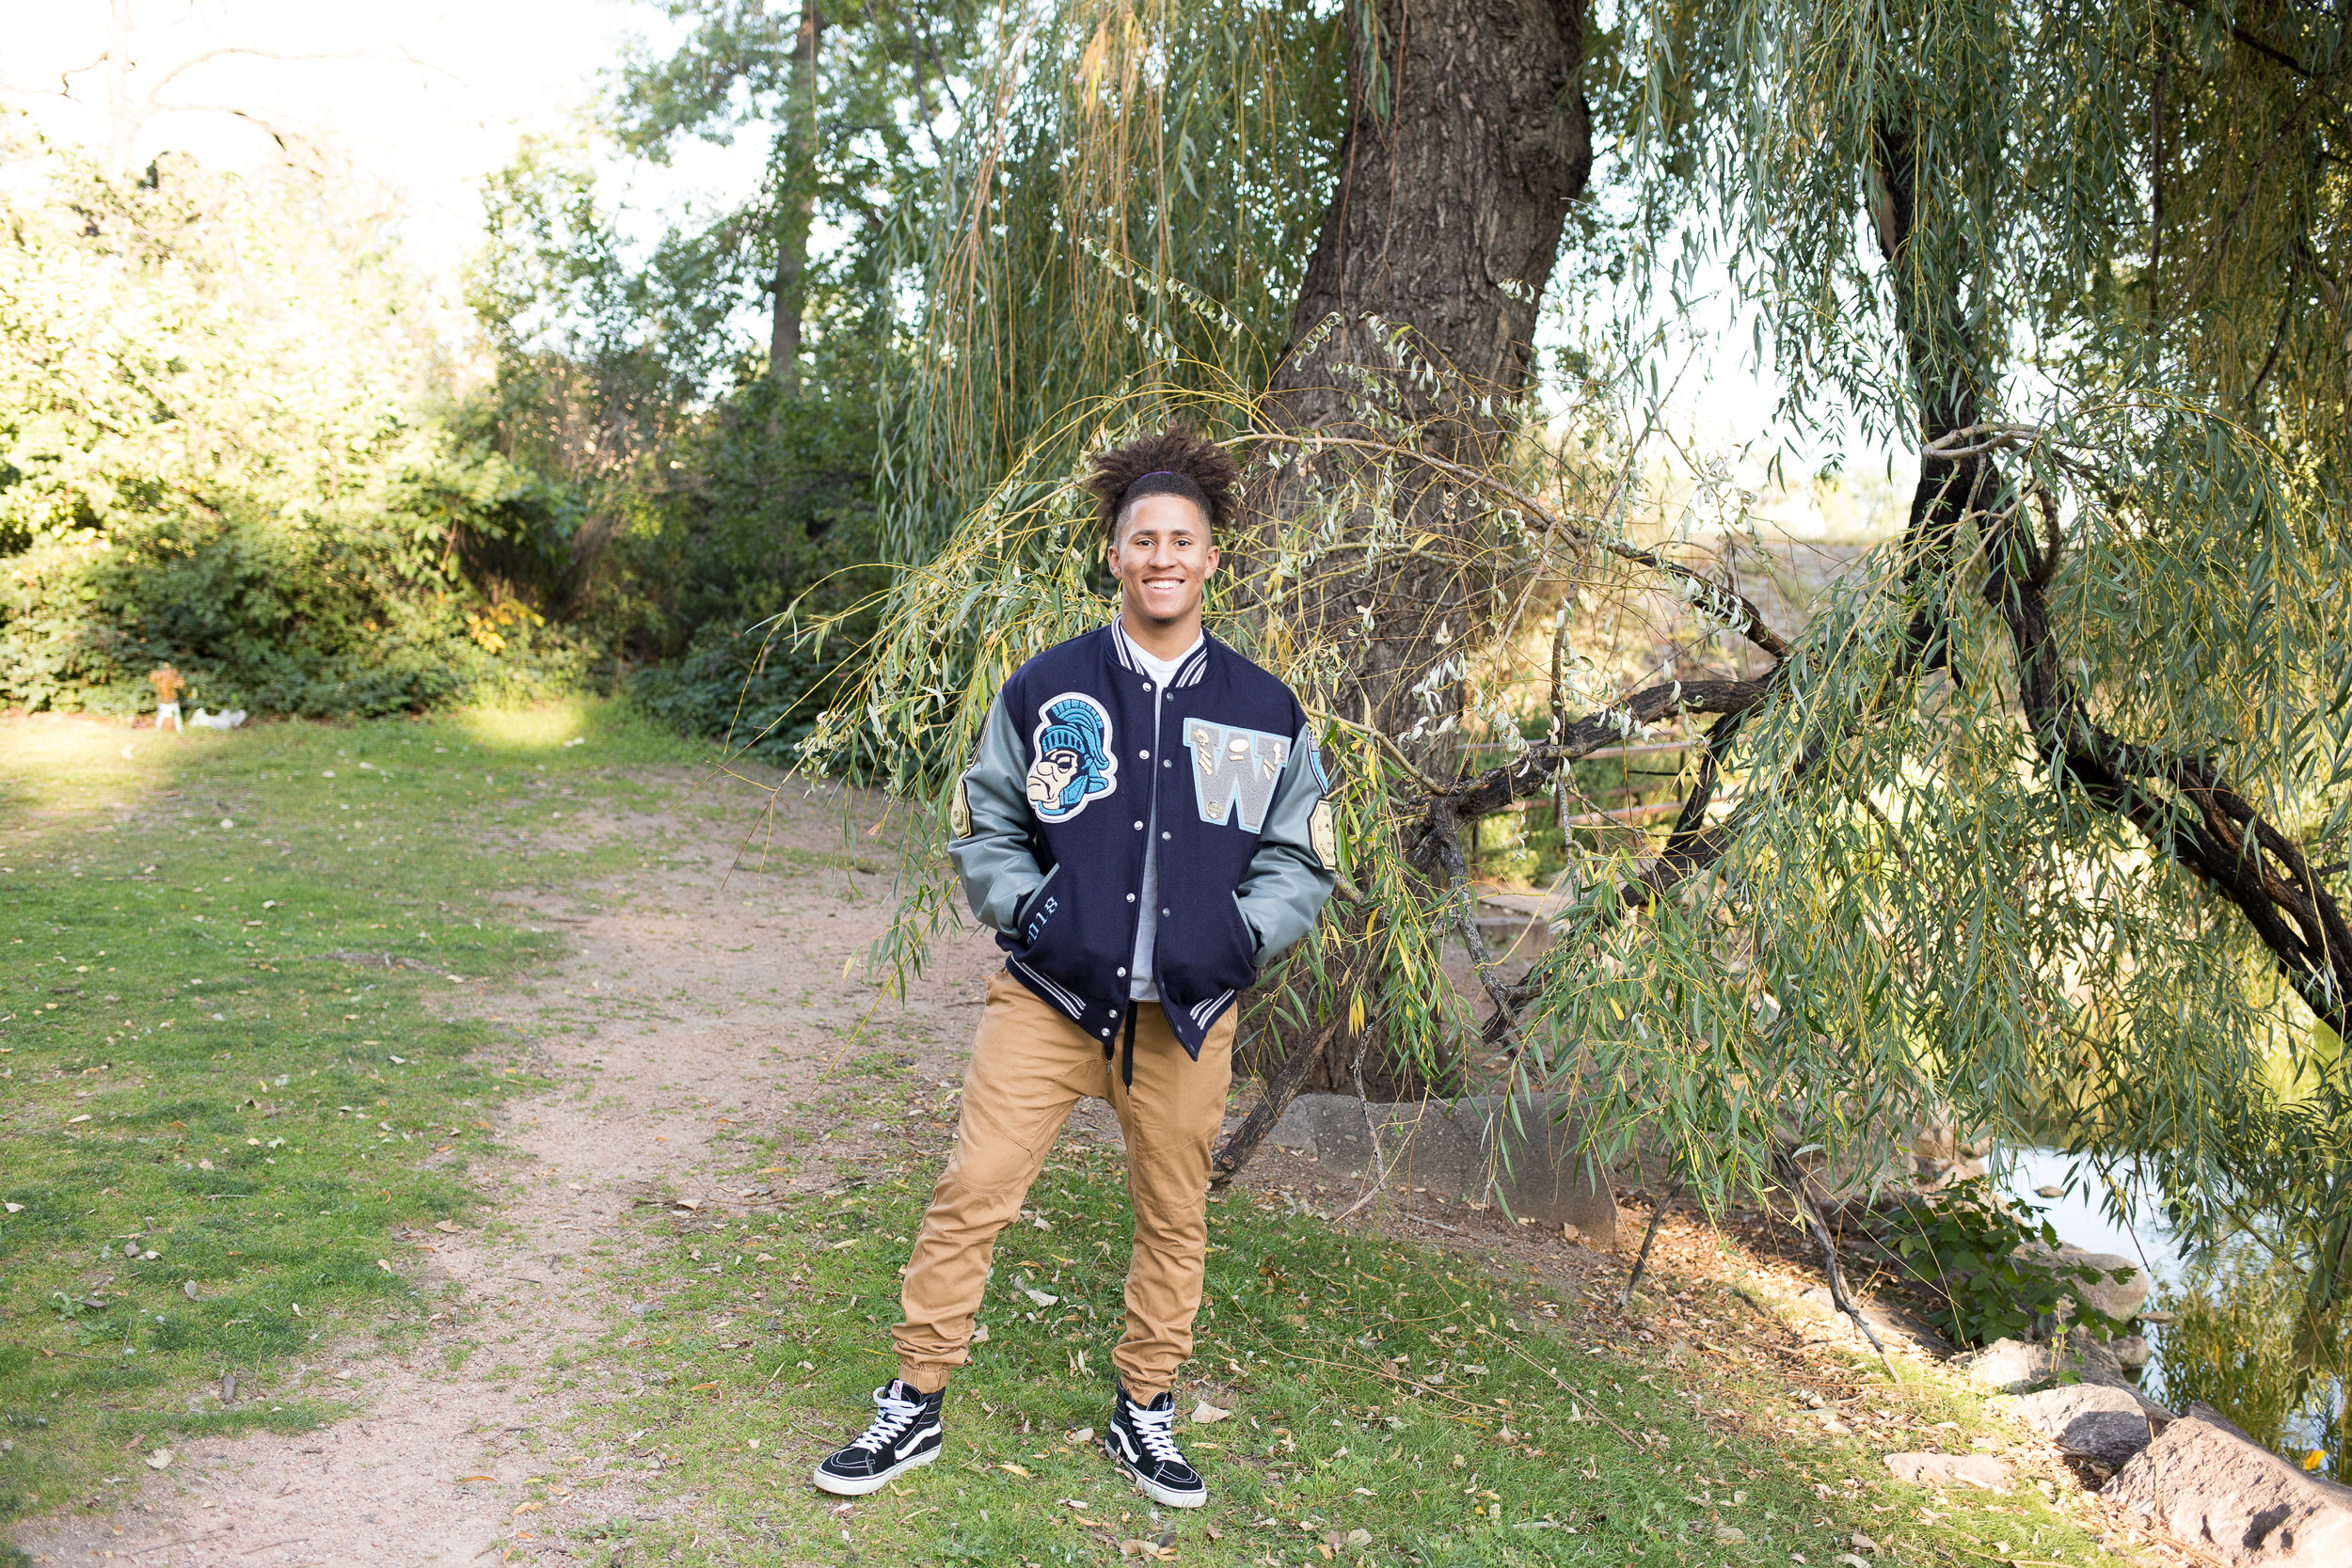 Colorado  Springs Senior Photography Senior standing near trees and pond in Monument Valley Park in his varsity jacket for Widefield High School Stacy Carosa Photography